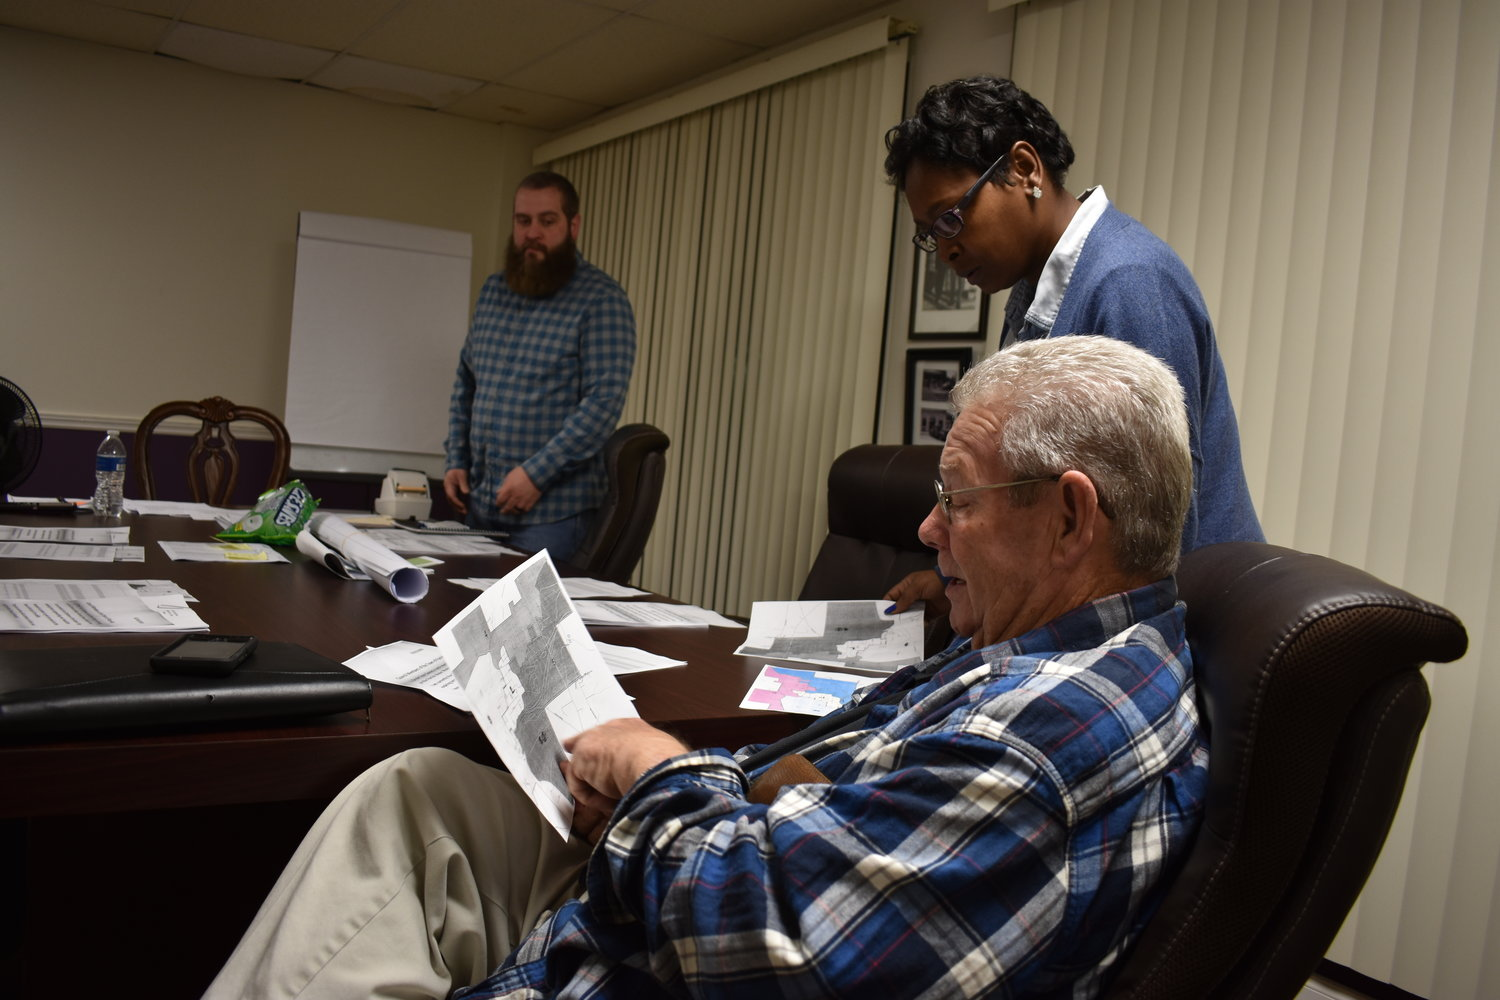 Parrish Town Councilman William Smith looks at district maps for the upcoming municipal elections before Tuesday night's council workshop. Mayor La'Tisha Oliver and Councilman Jake Williams look on.